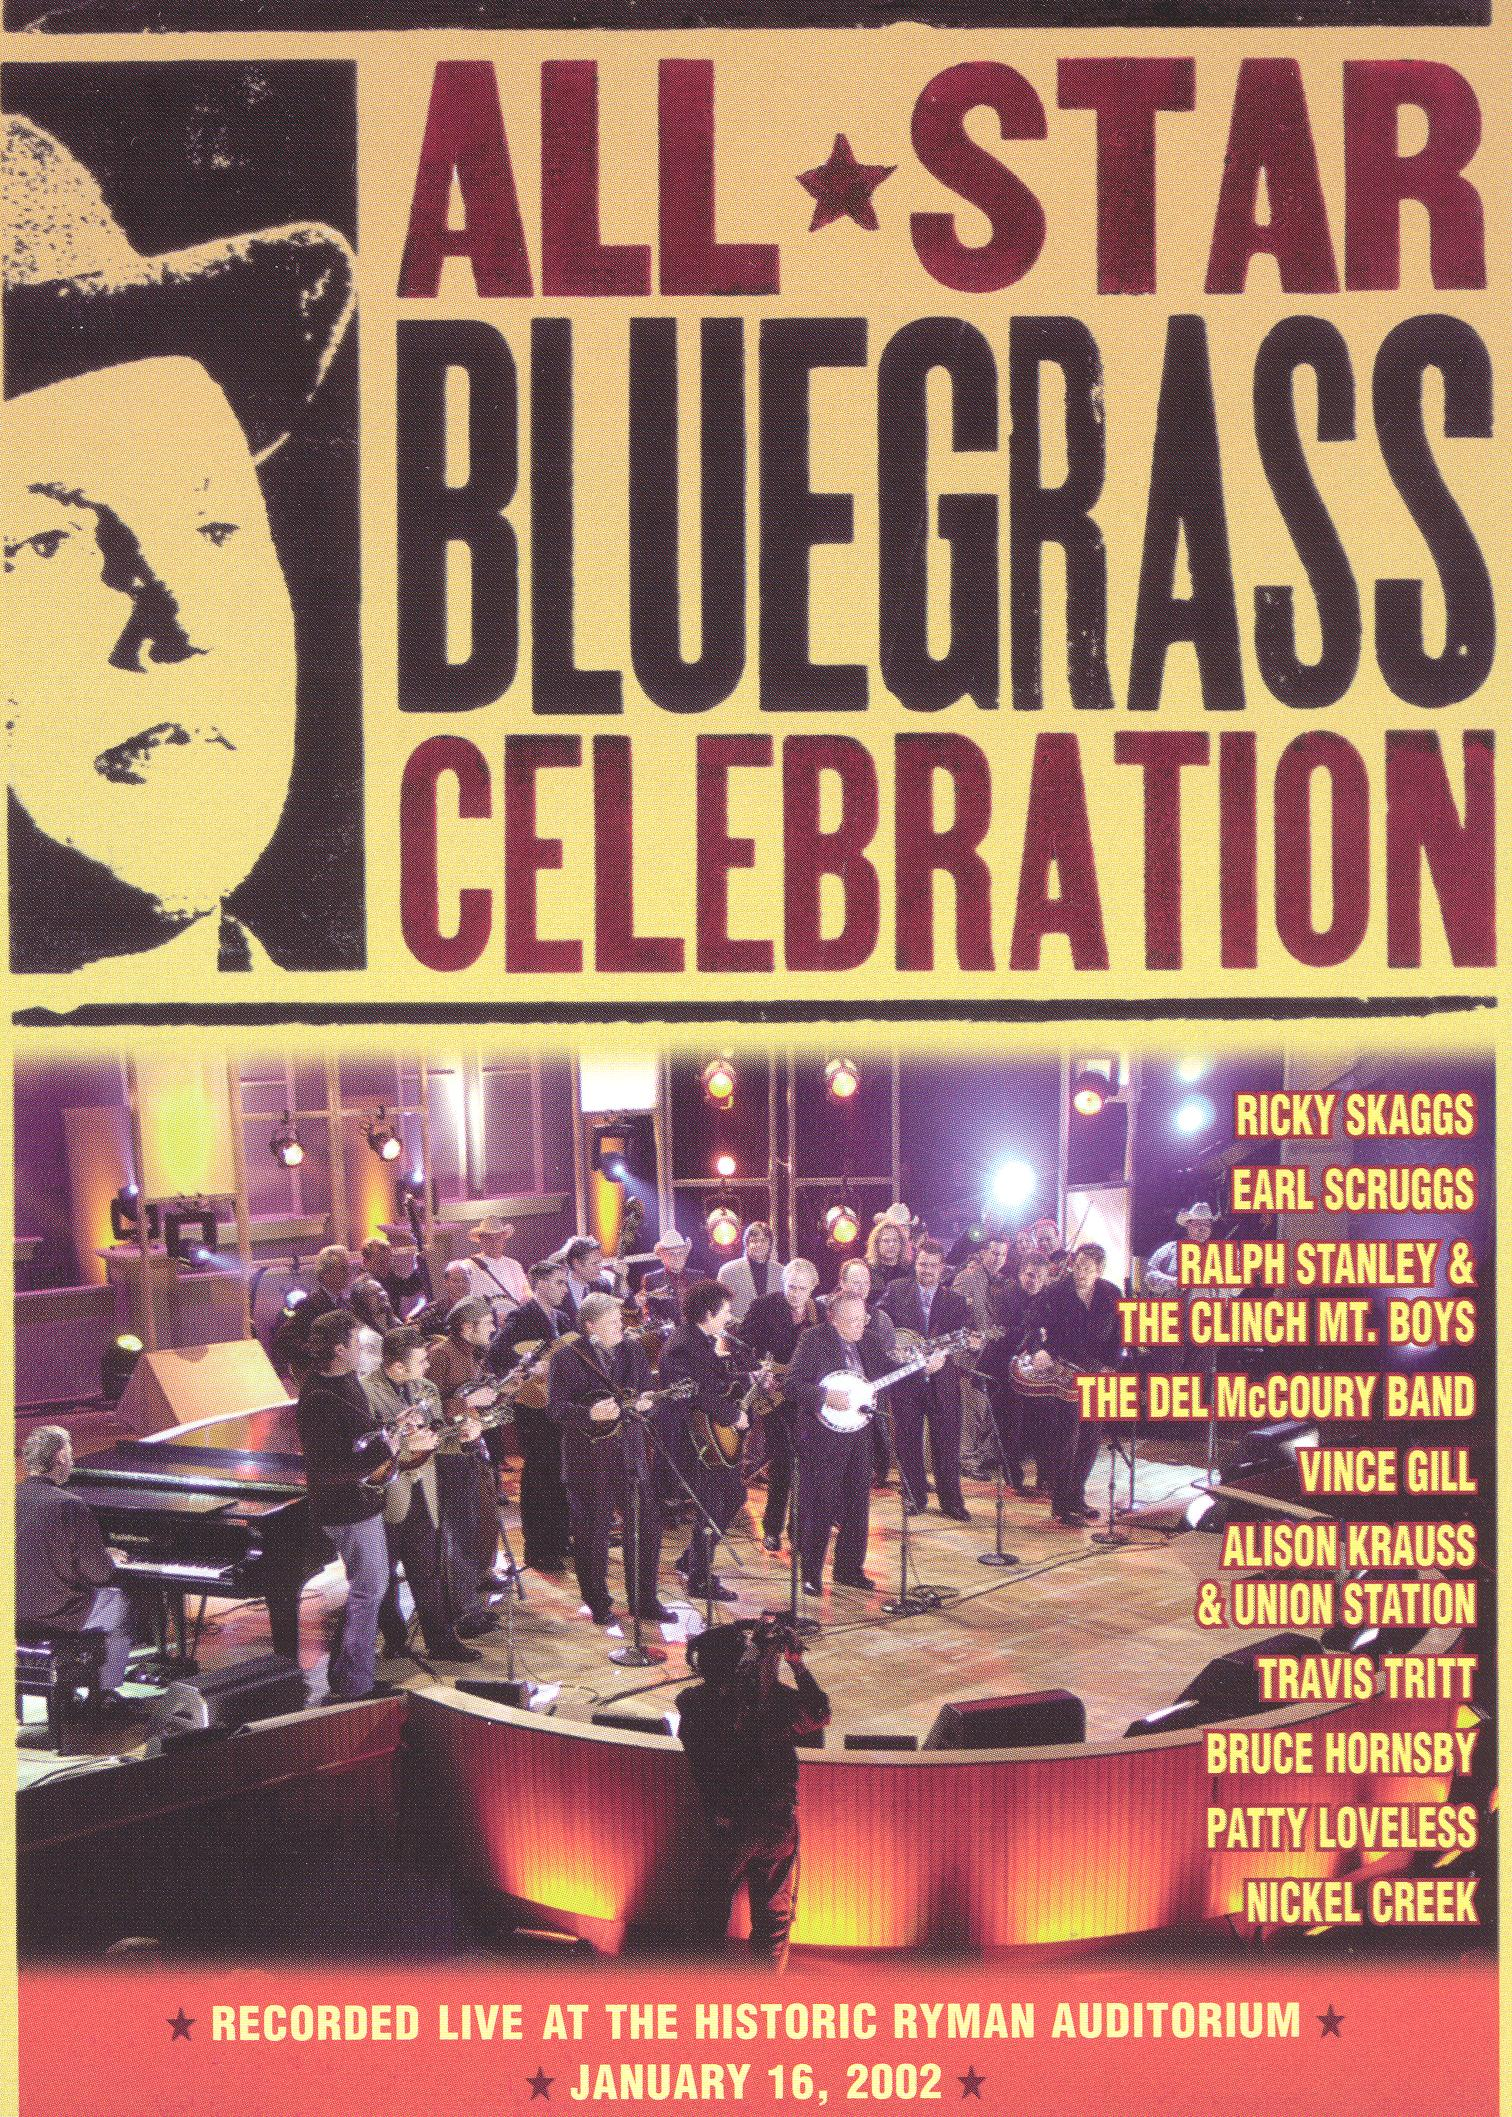 All-Star Bluegrass Celebration